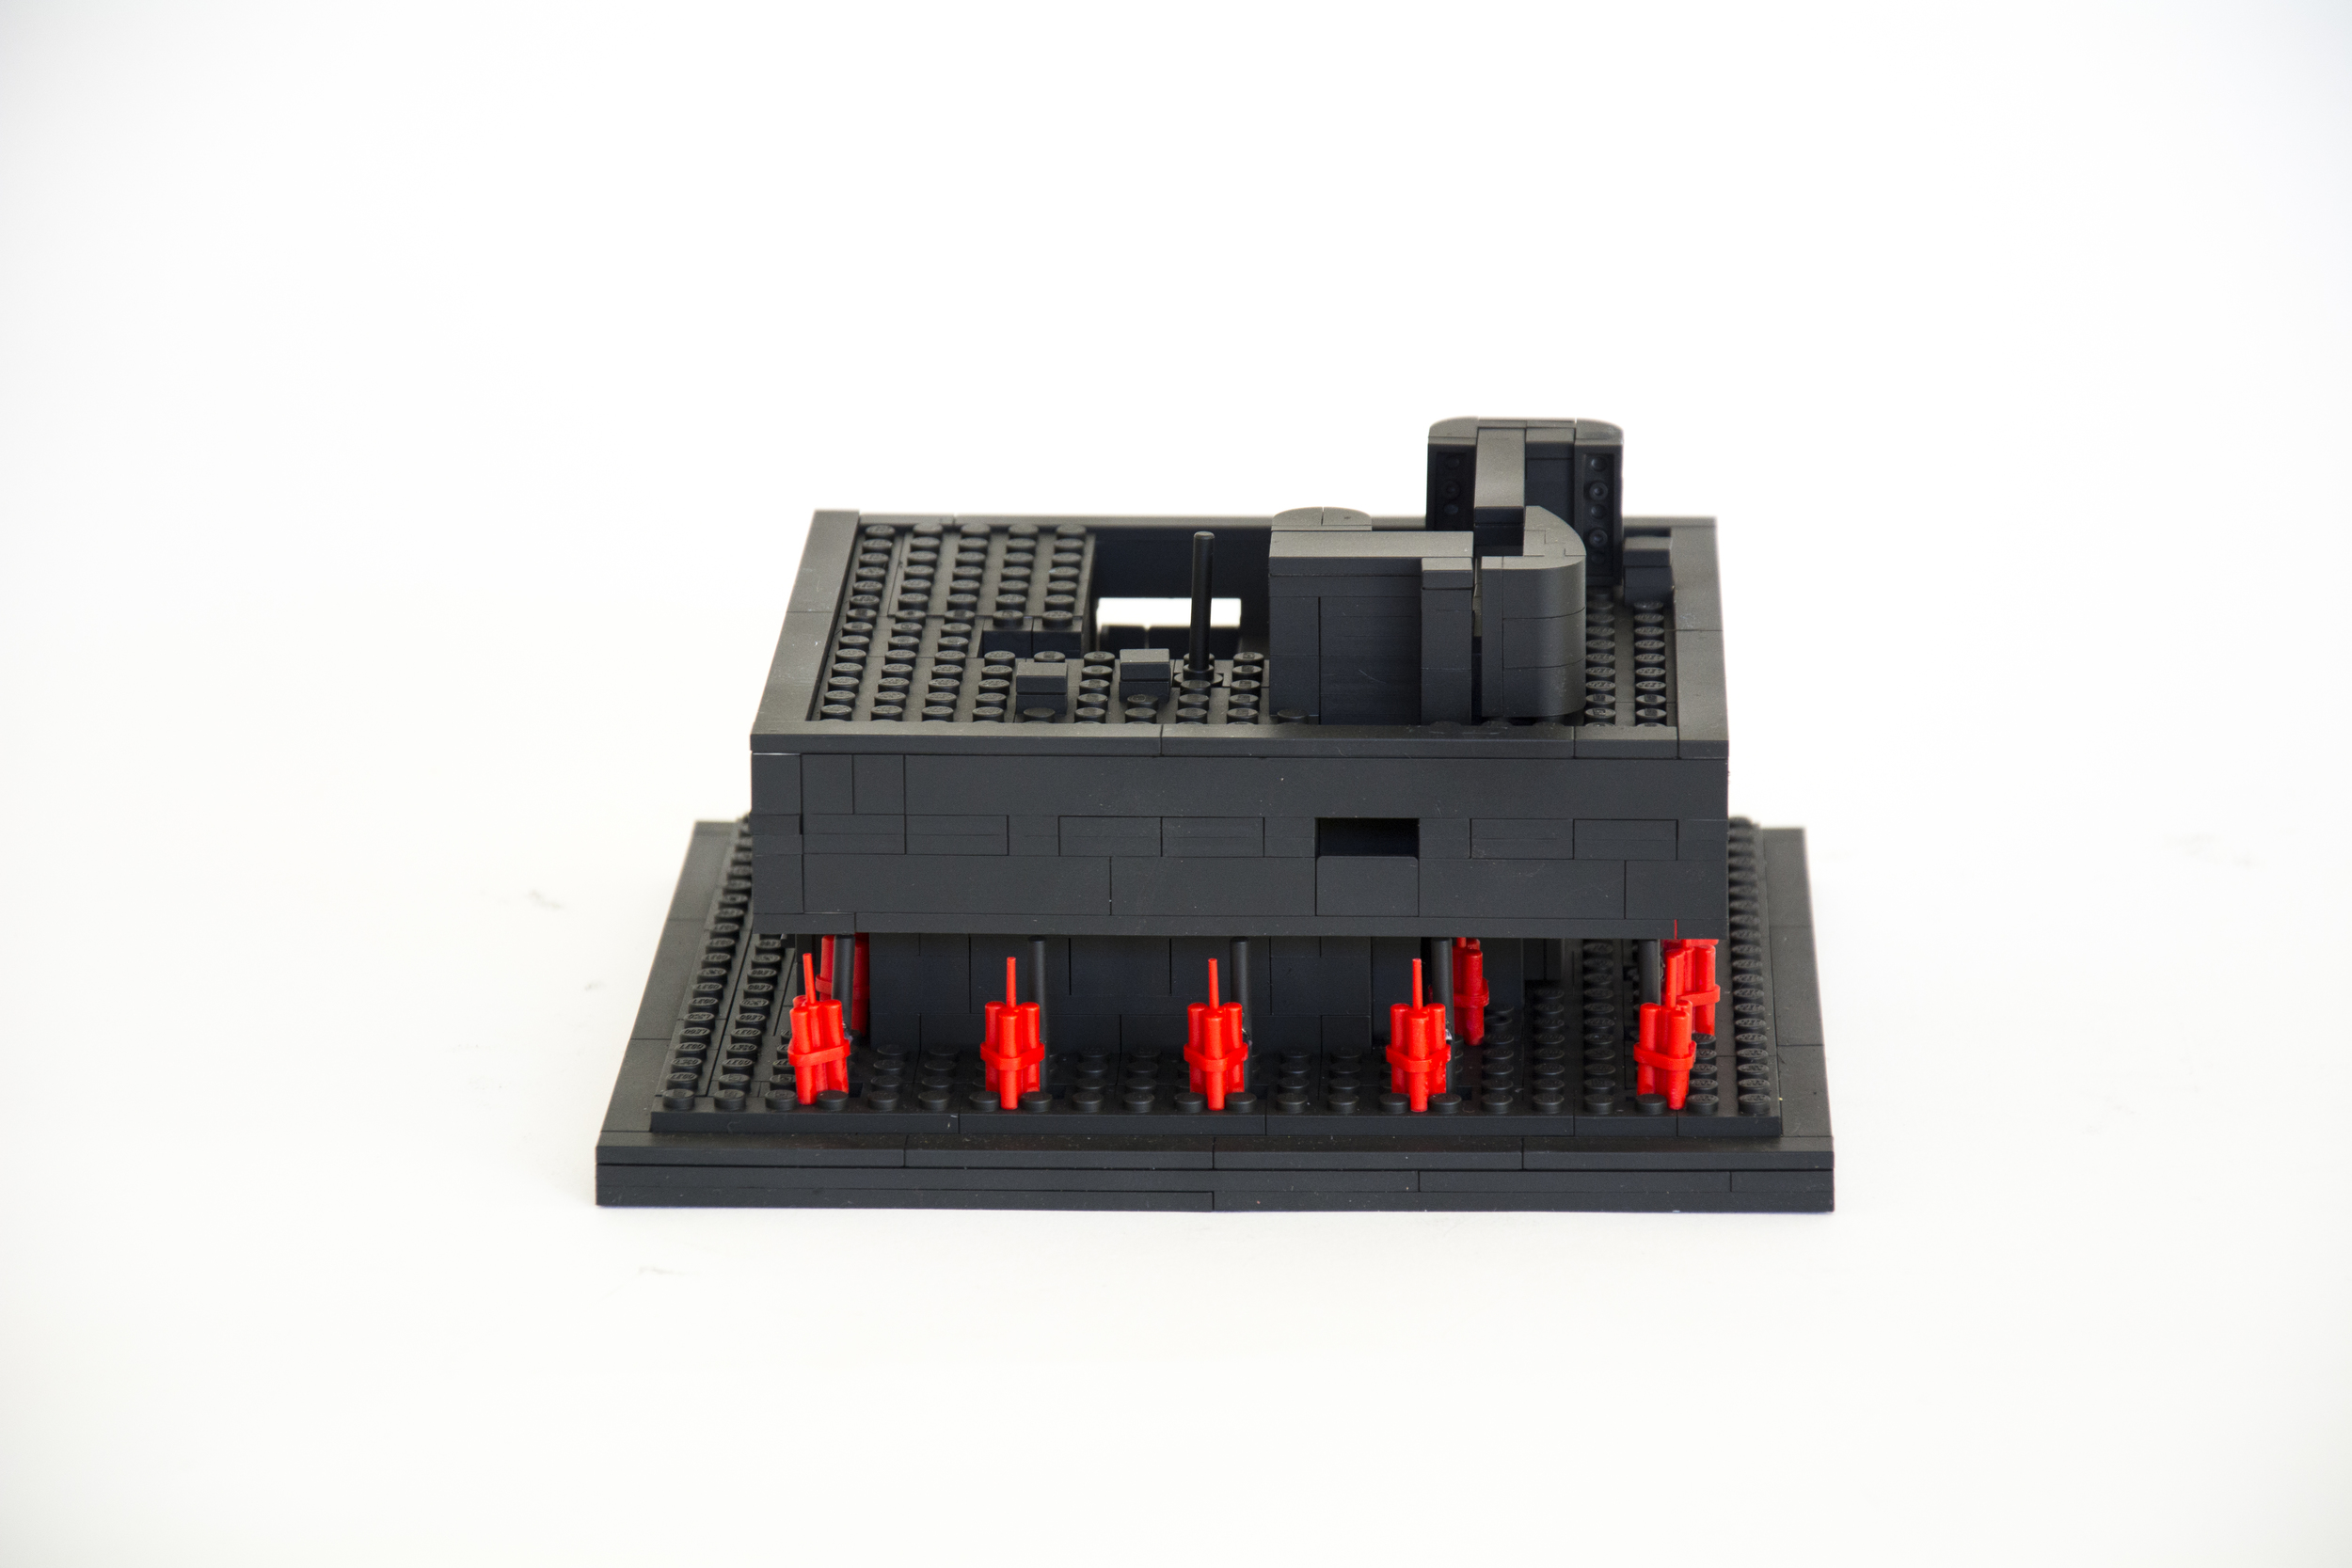 """Anti-Monuments for Counter Histories (07/15/1972) , painted lego pieces and plastic dynamite, 3.6"""" (9.2cm) tall, 7.5"""" (19.2cm) wide and 6.9"""" (17.5cm) deep,2015"""